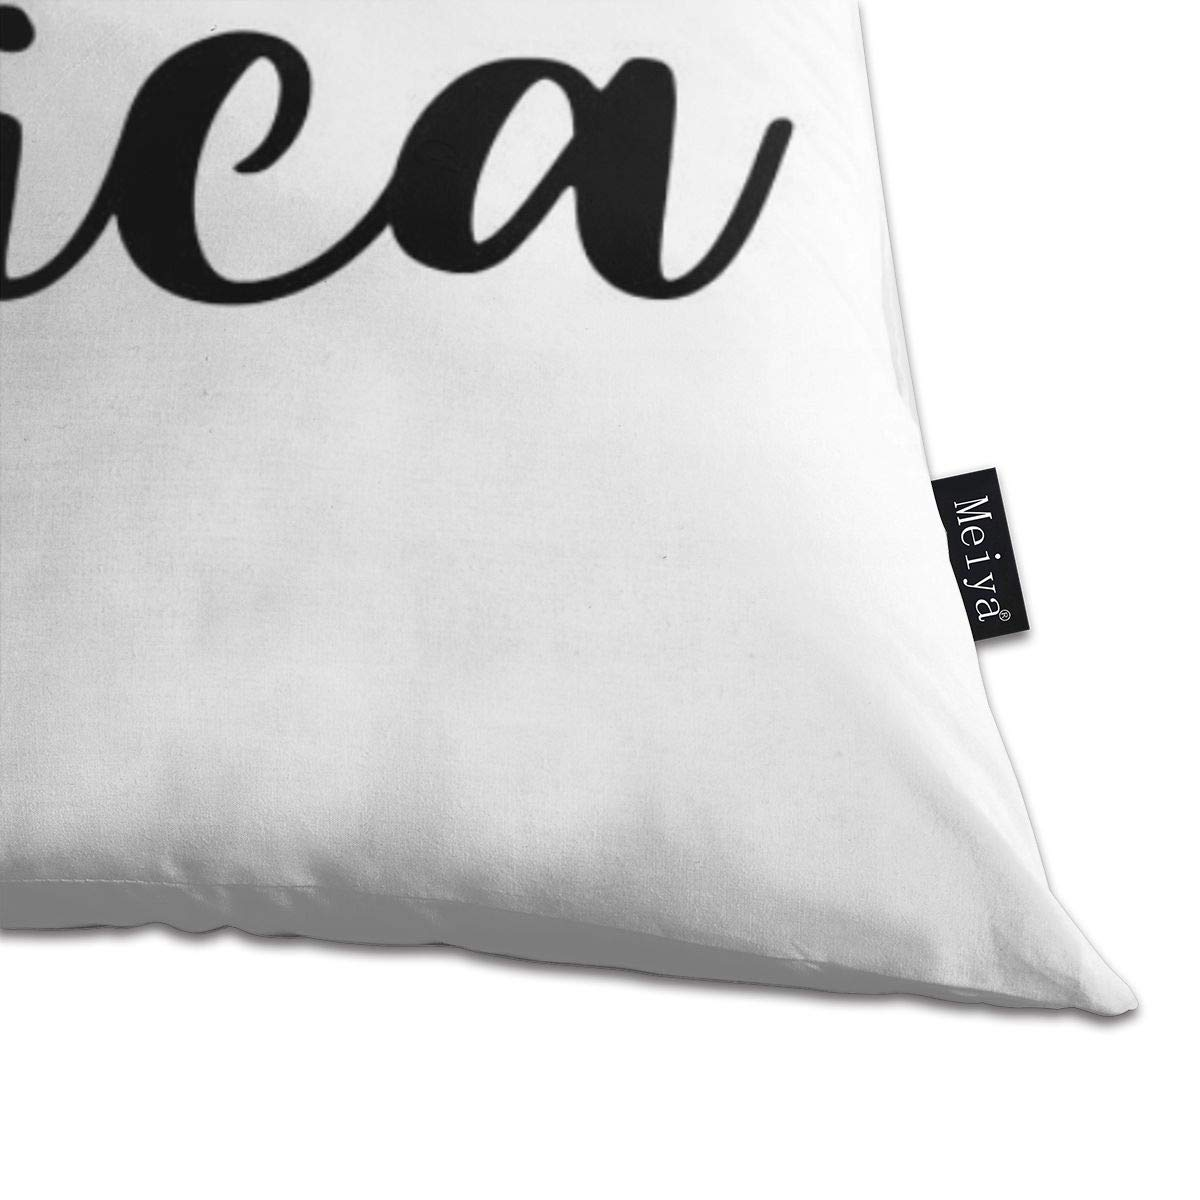 QMS CONTRACTING LIMITED Throw Pillow Cover Riverdale Youre The Betty To My Veronica Decorative Pillow Case Home Decor Square 18x18 Inches Pillowcase